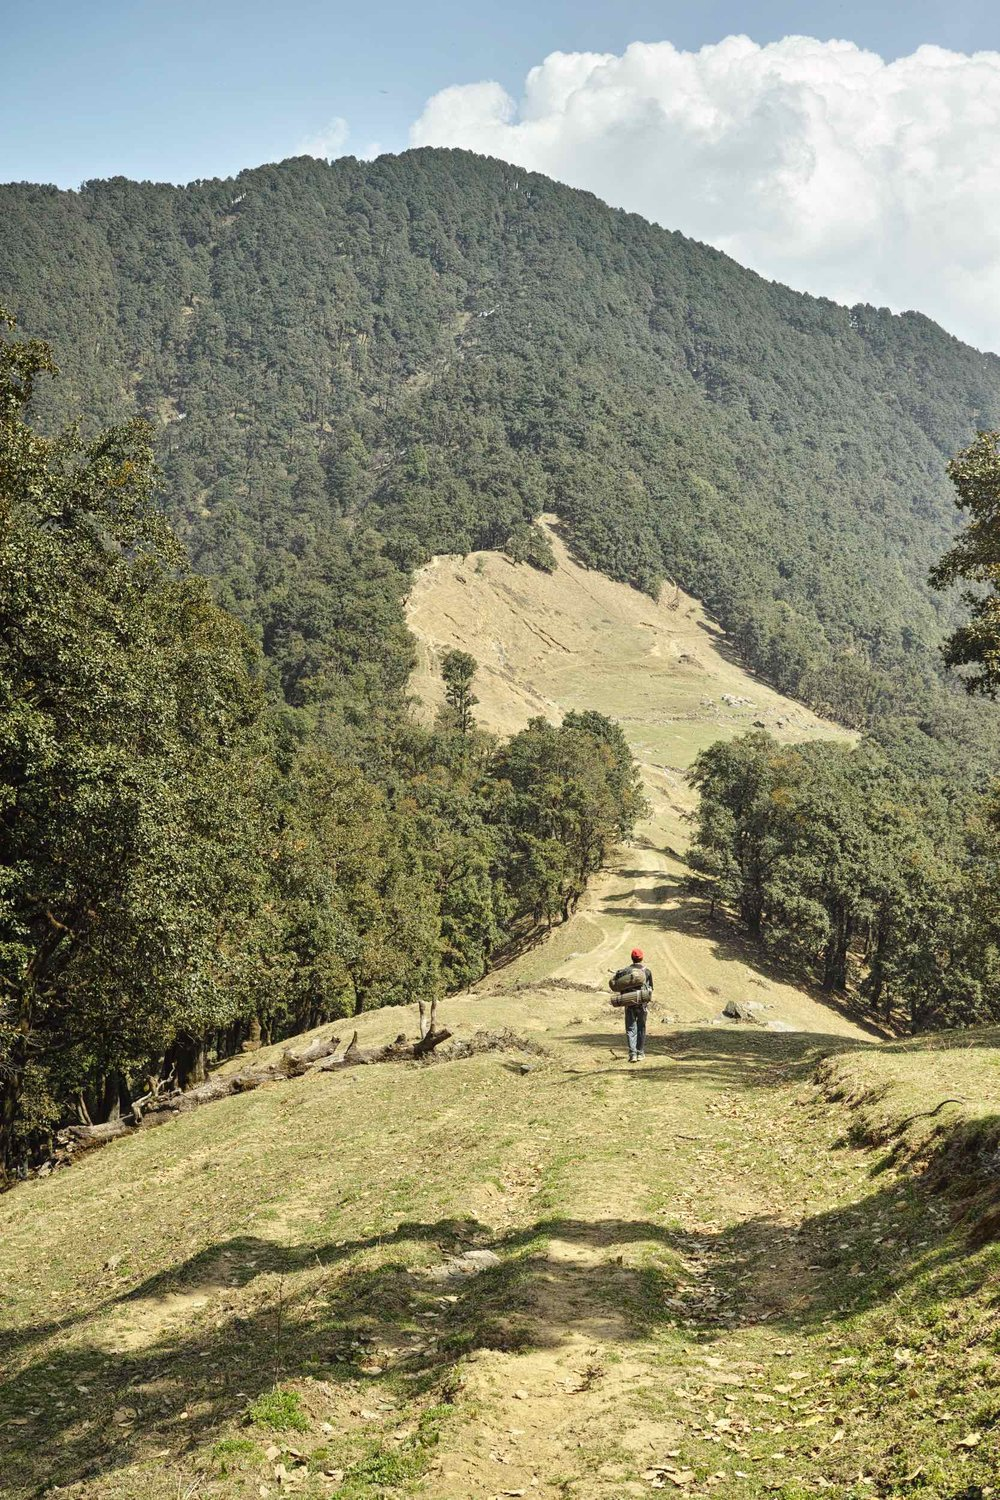 Walking along Nag Tibba ridge